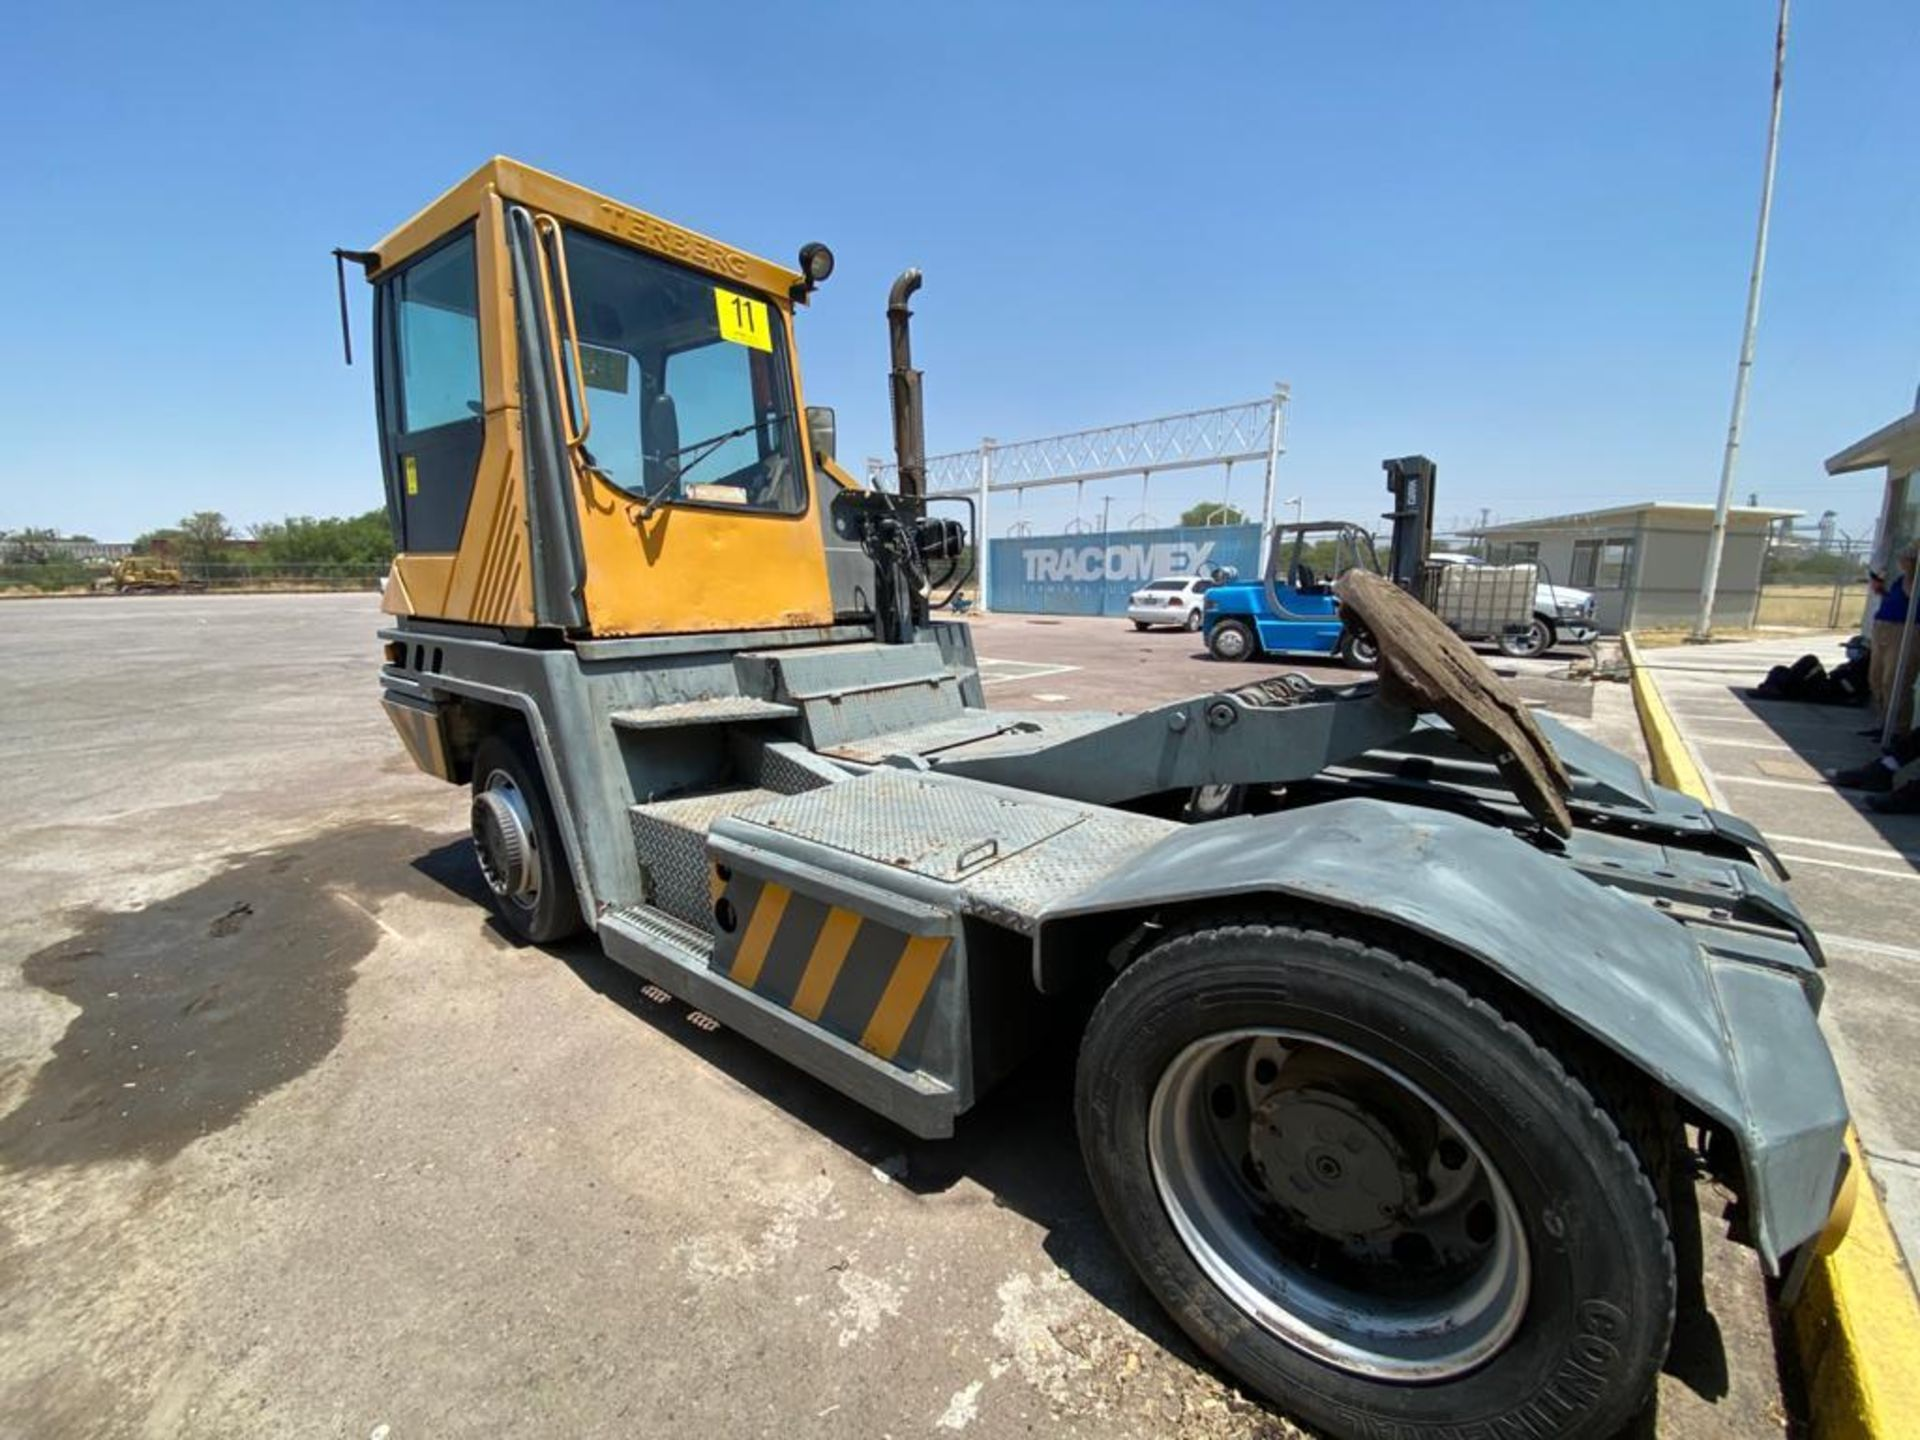 Terberg Capacity 2002 Terminal Tractor, automatic transmission - Image 32 of 57